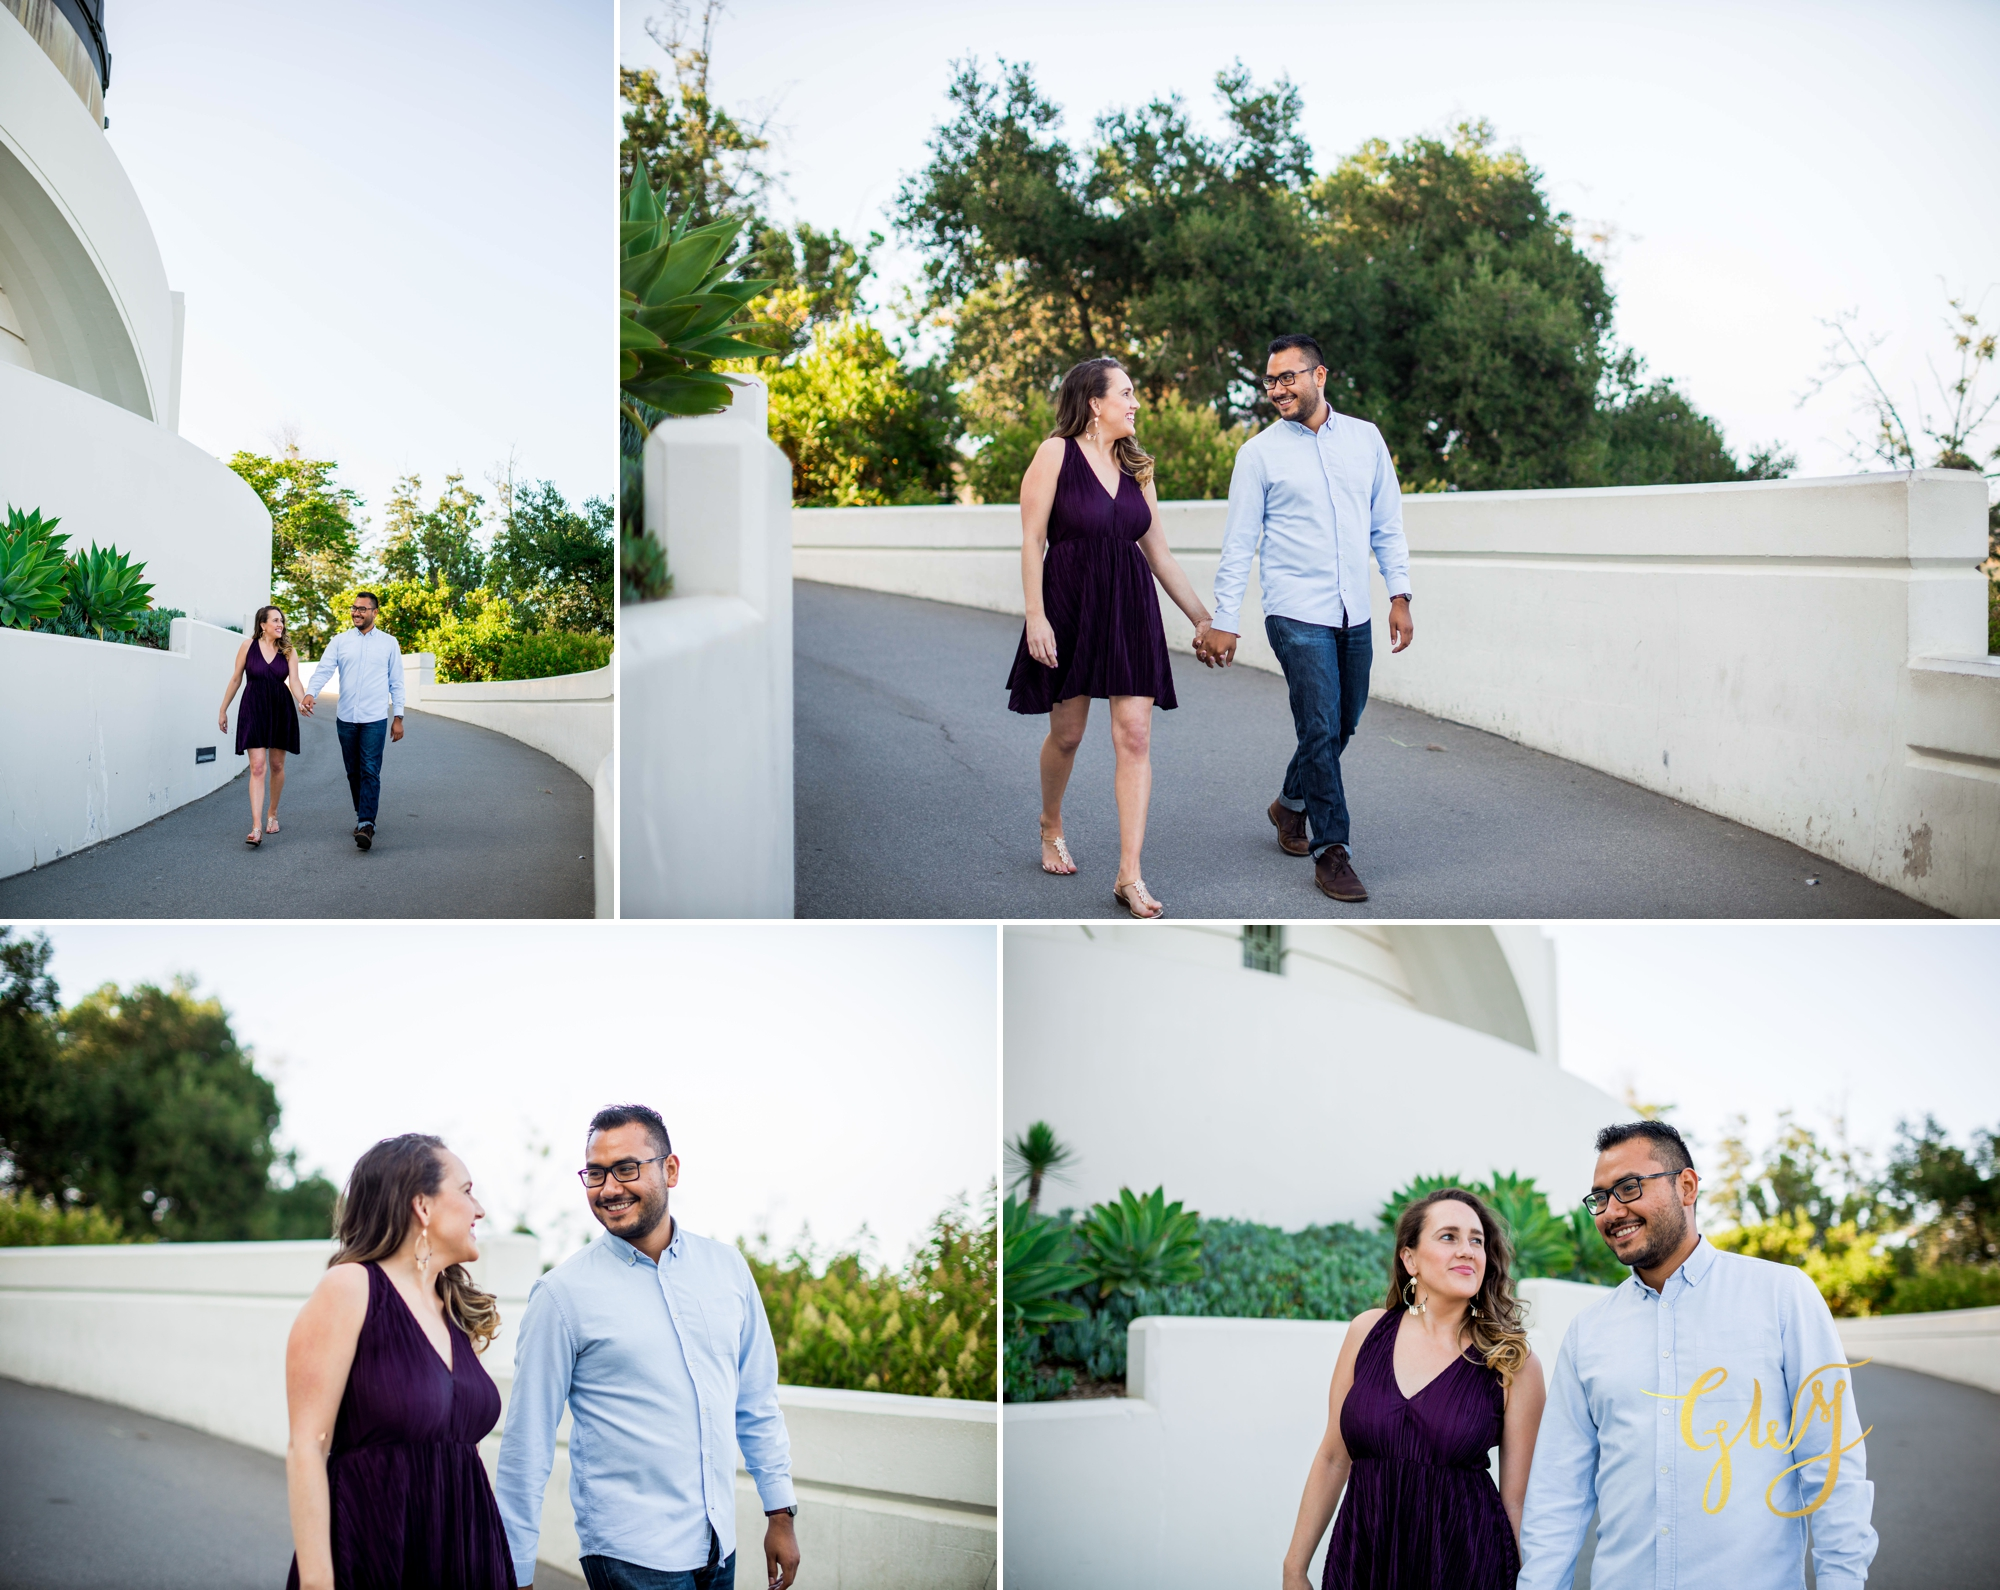 Emily + Gilbert's Griffith Observatory LA Dreamy Sunset Engagement Session by Glass Woods Media 3.jpg